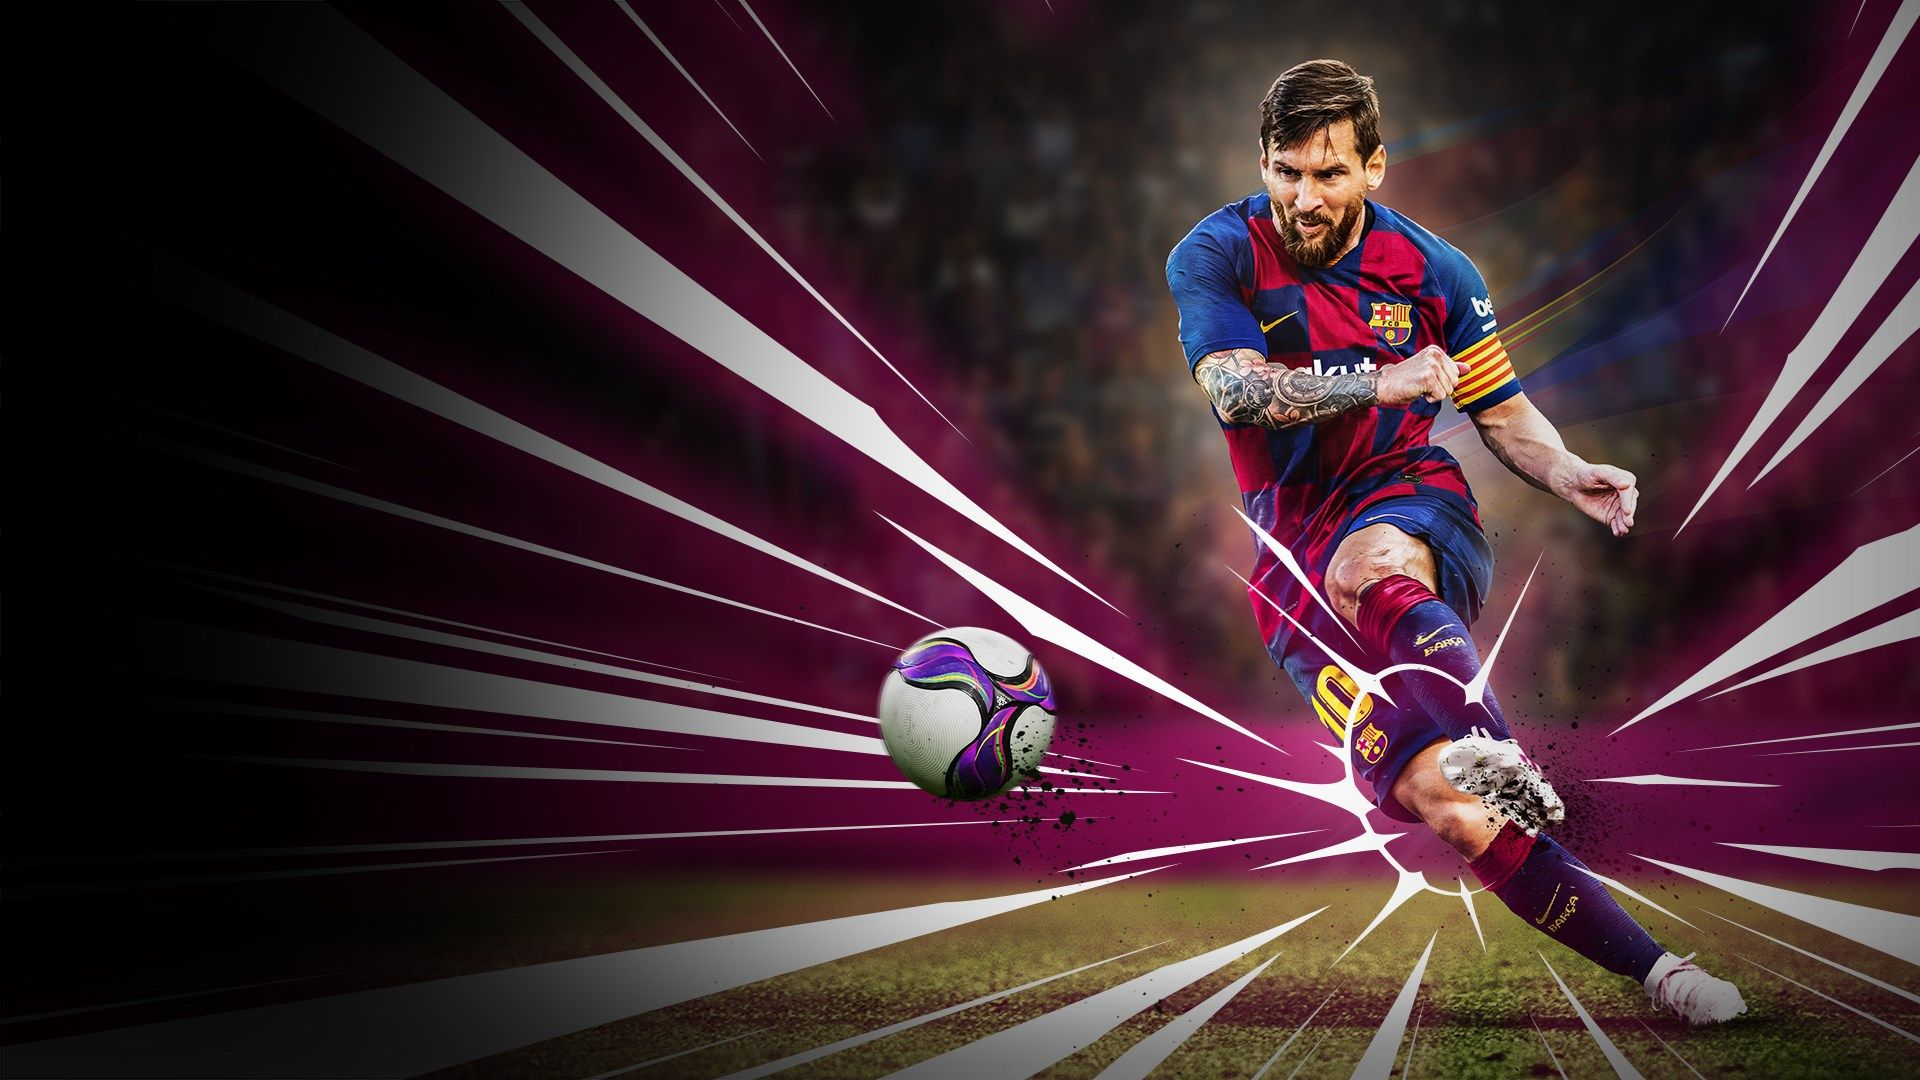 Pes 2020 Wallpapers Top Free Pes 2020 Backgrounds